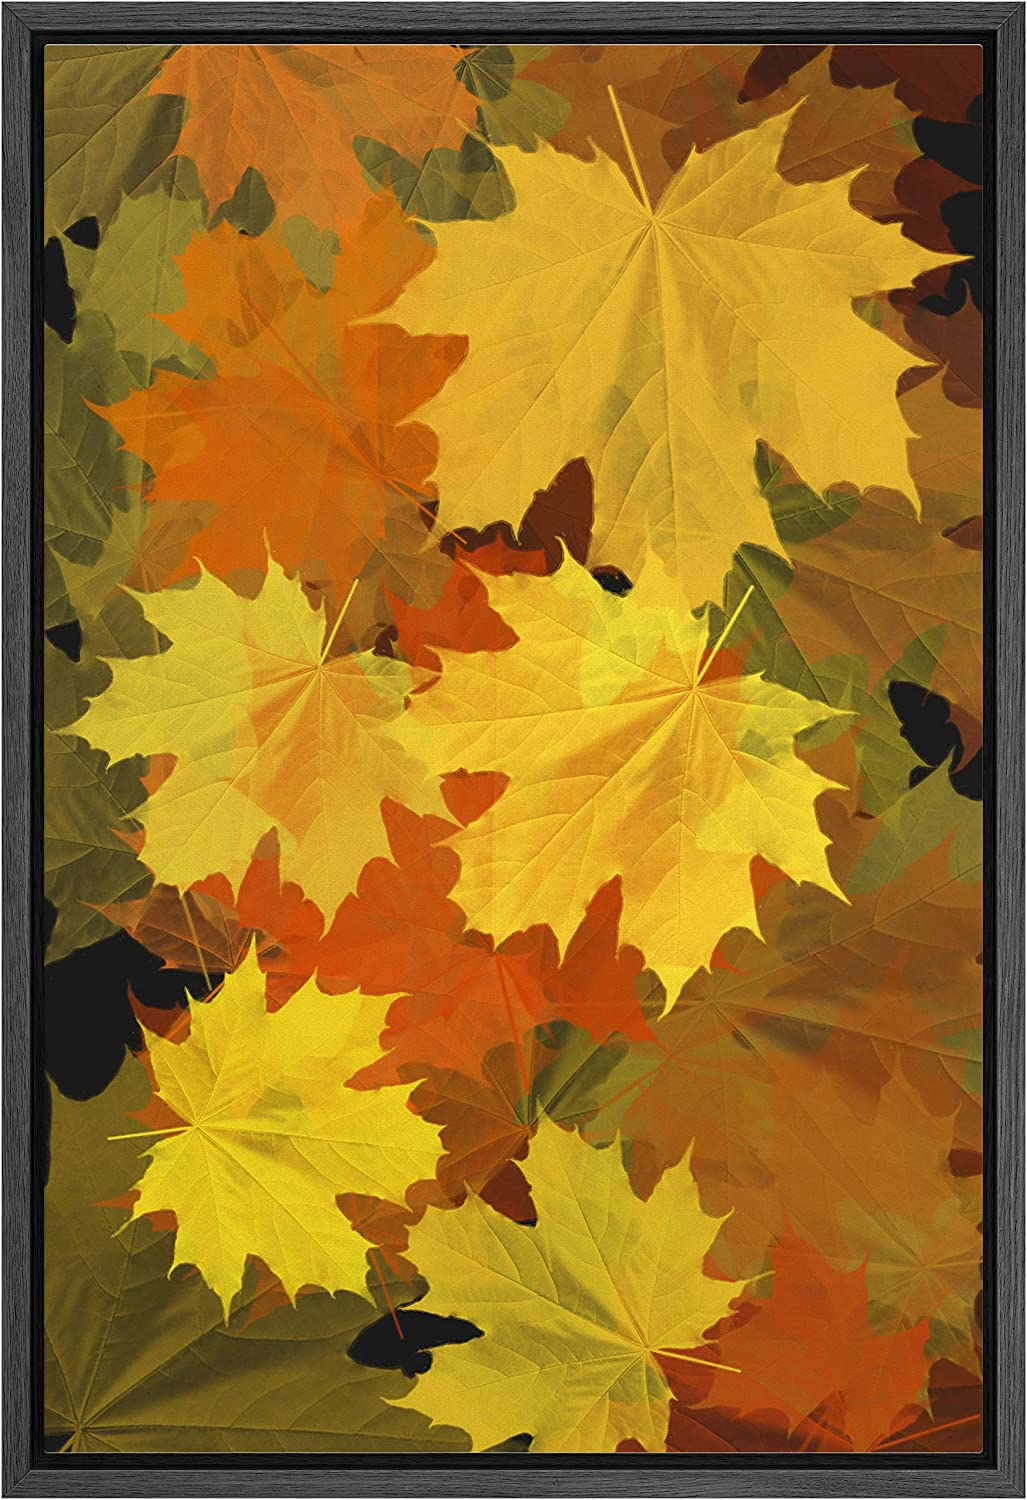 SIGNWIN Framed Canvas Wall Art New life Yellow and Leaves Orange Cheap mail order shopping Maple Bo